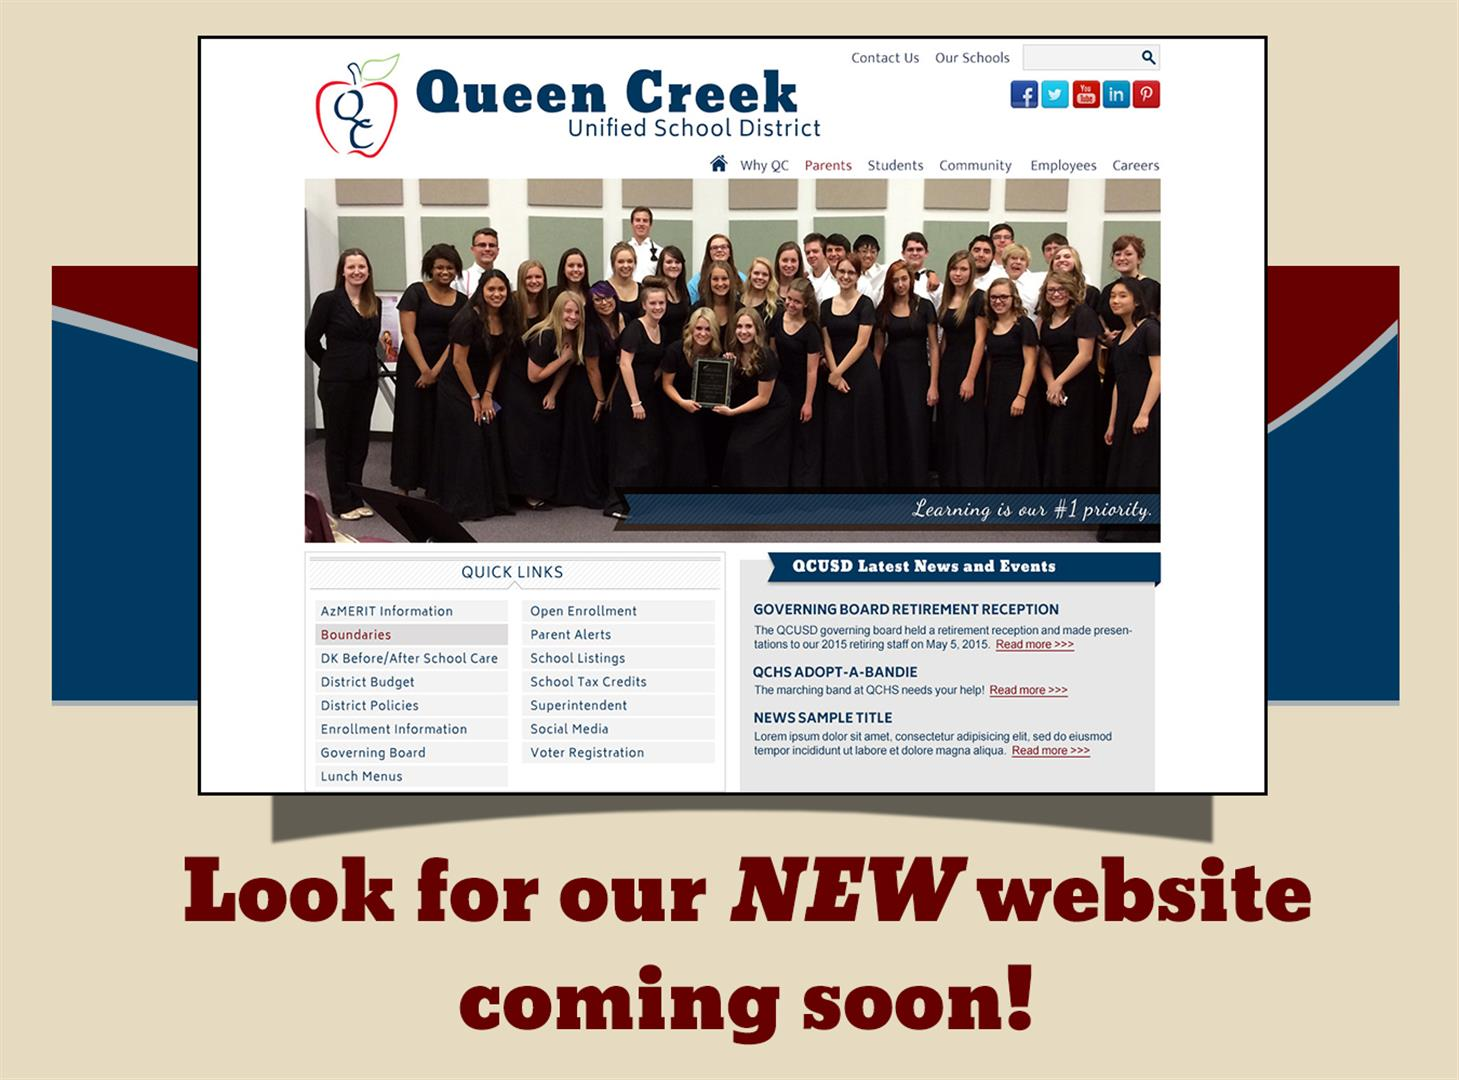 Look for our NEW website coming soon!